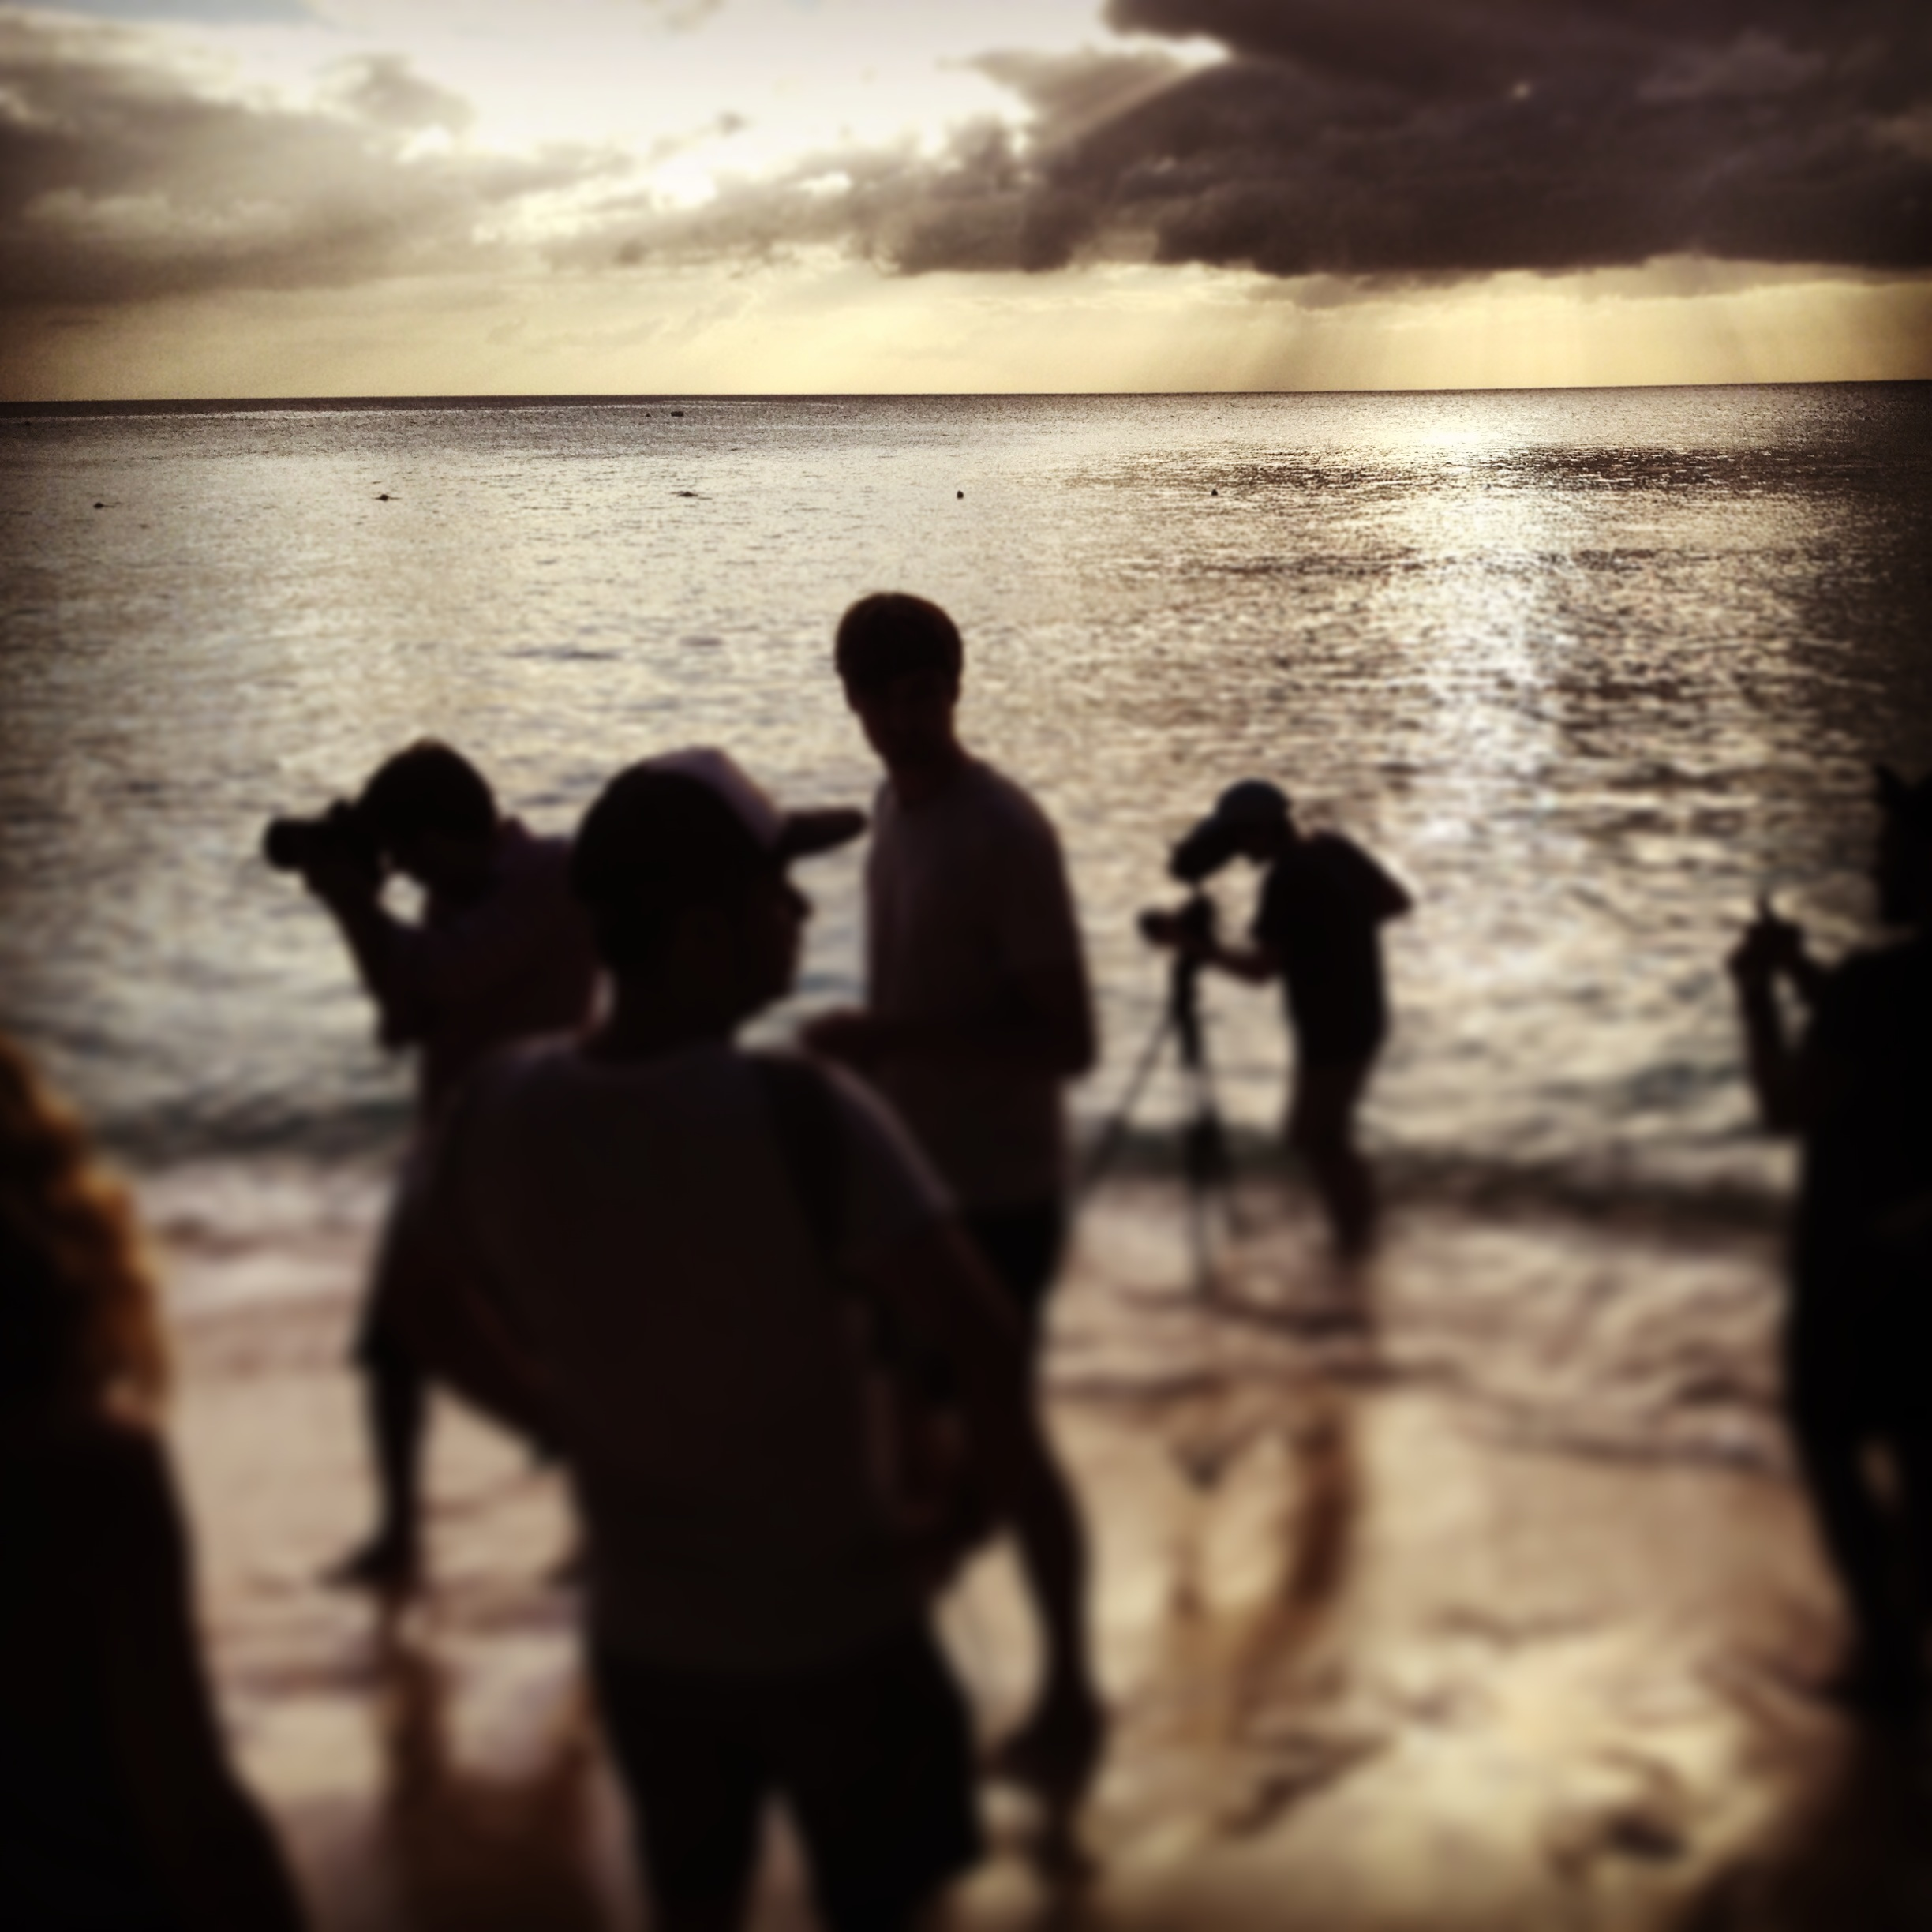 calypso in barbados photo shoot bts county fair productions on the beach